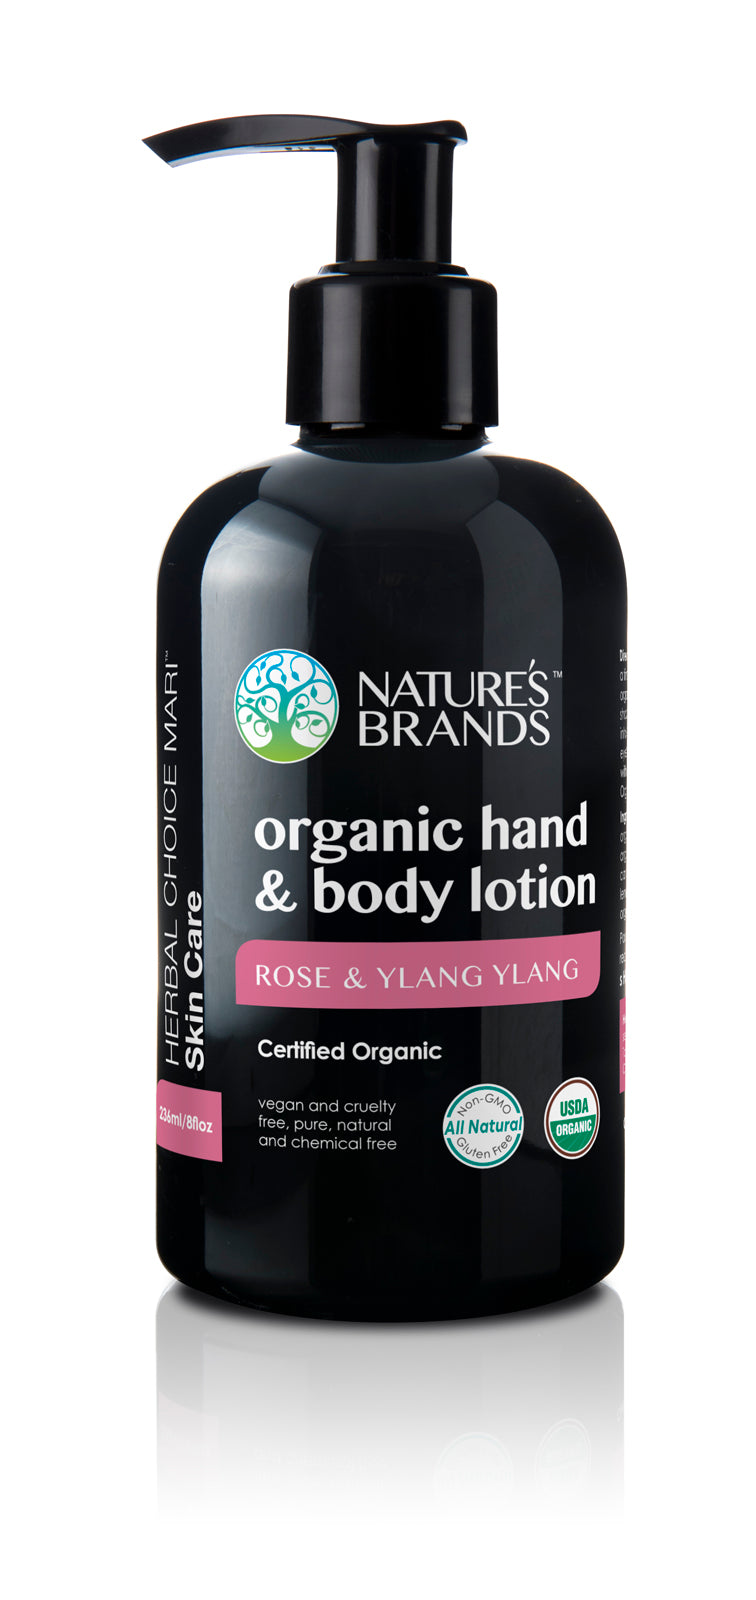 Herbal Choice Mari Organic Hand And Body Lotion, Rose And Ylang Ylang - Herbal Choice Mari Organic Hand And Body Lotion, Rose And Ylang Ylang - Herbal Choice Mari Organic Hand And Body Lotion, Rose And Ylang Ylang